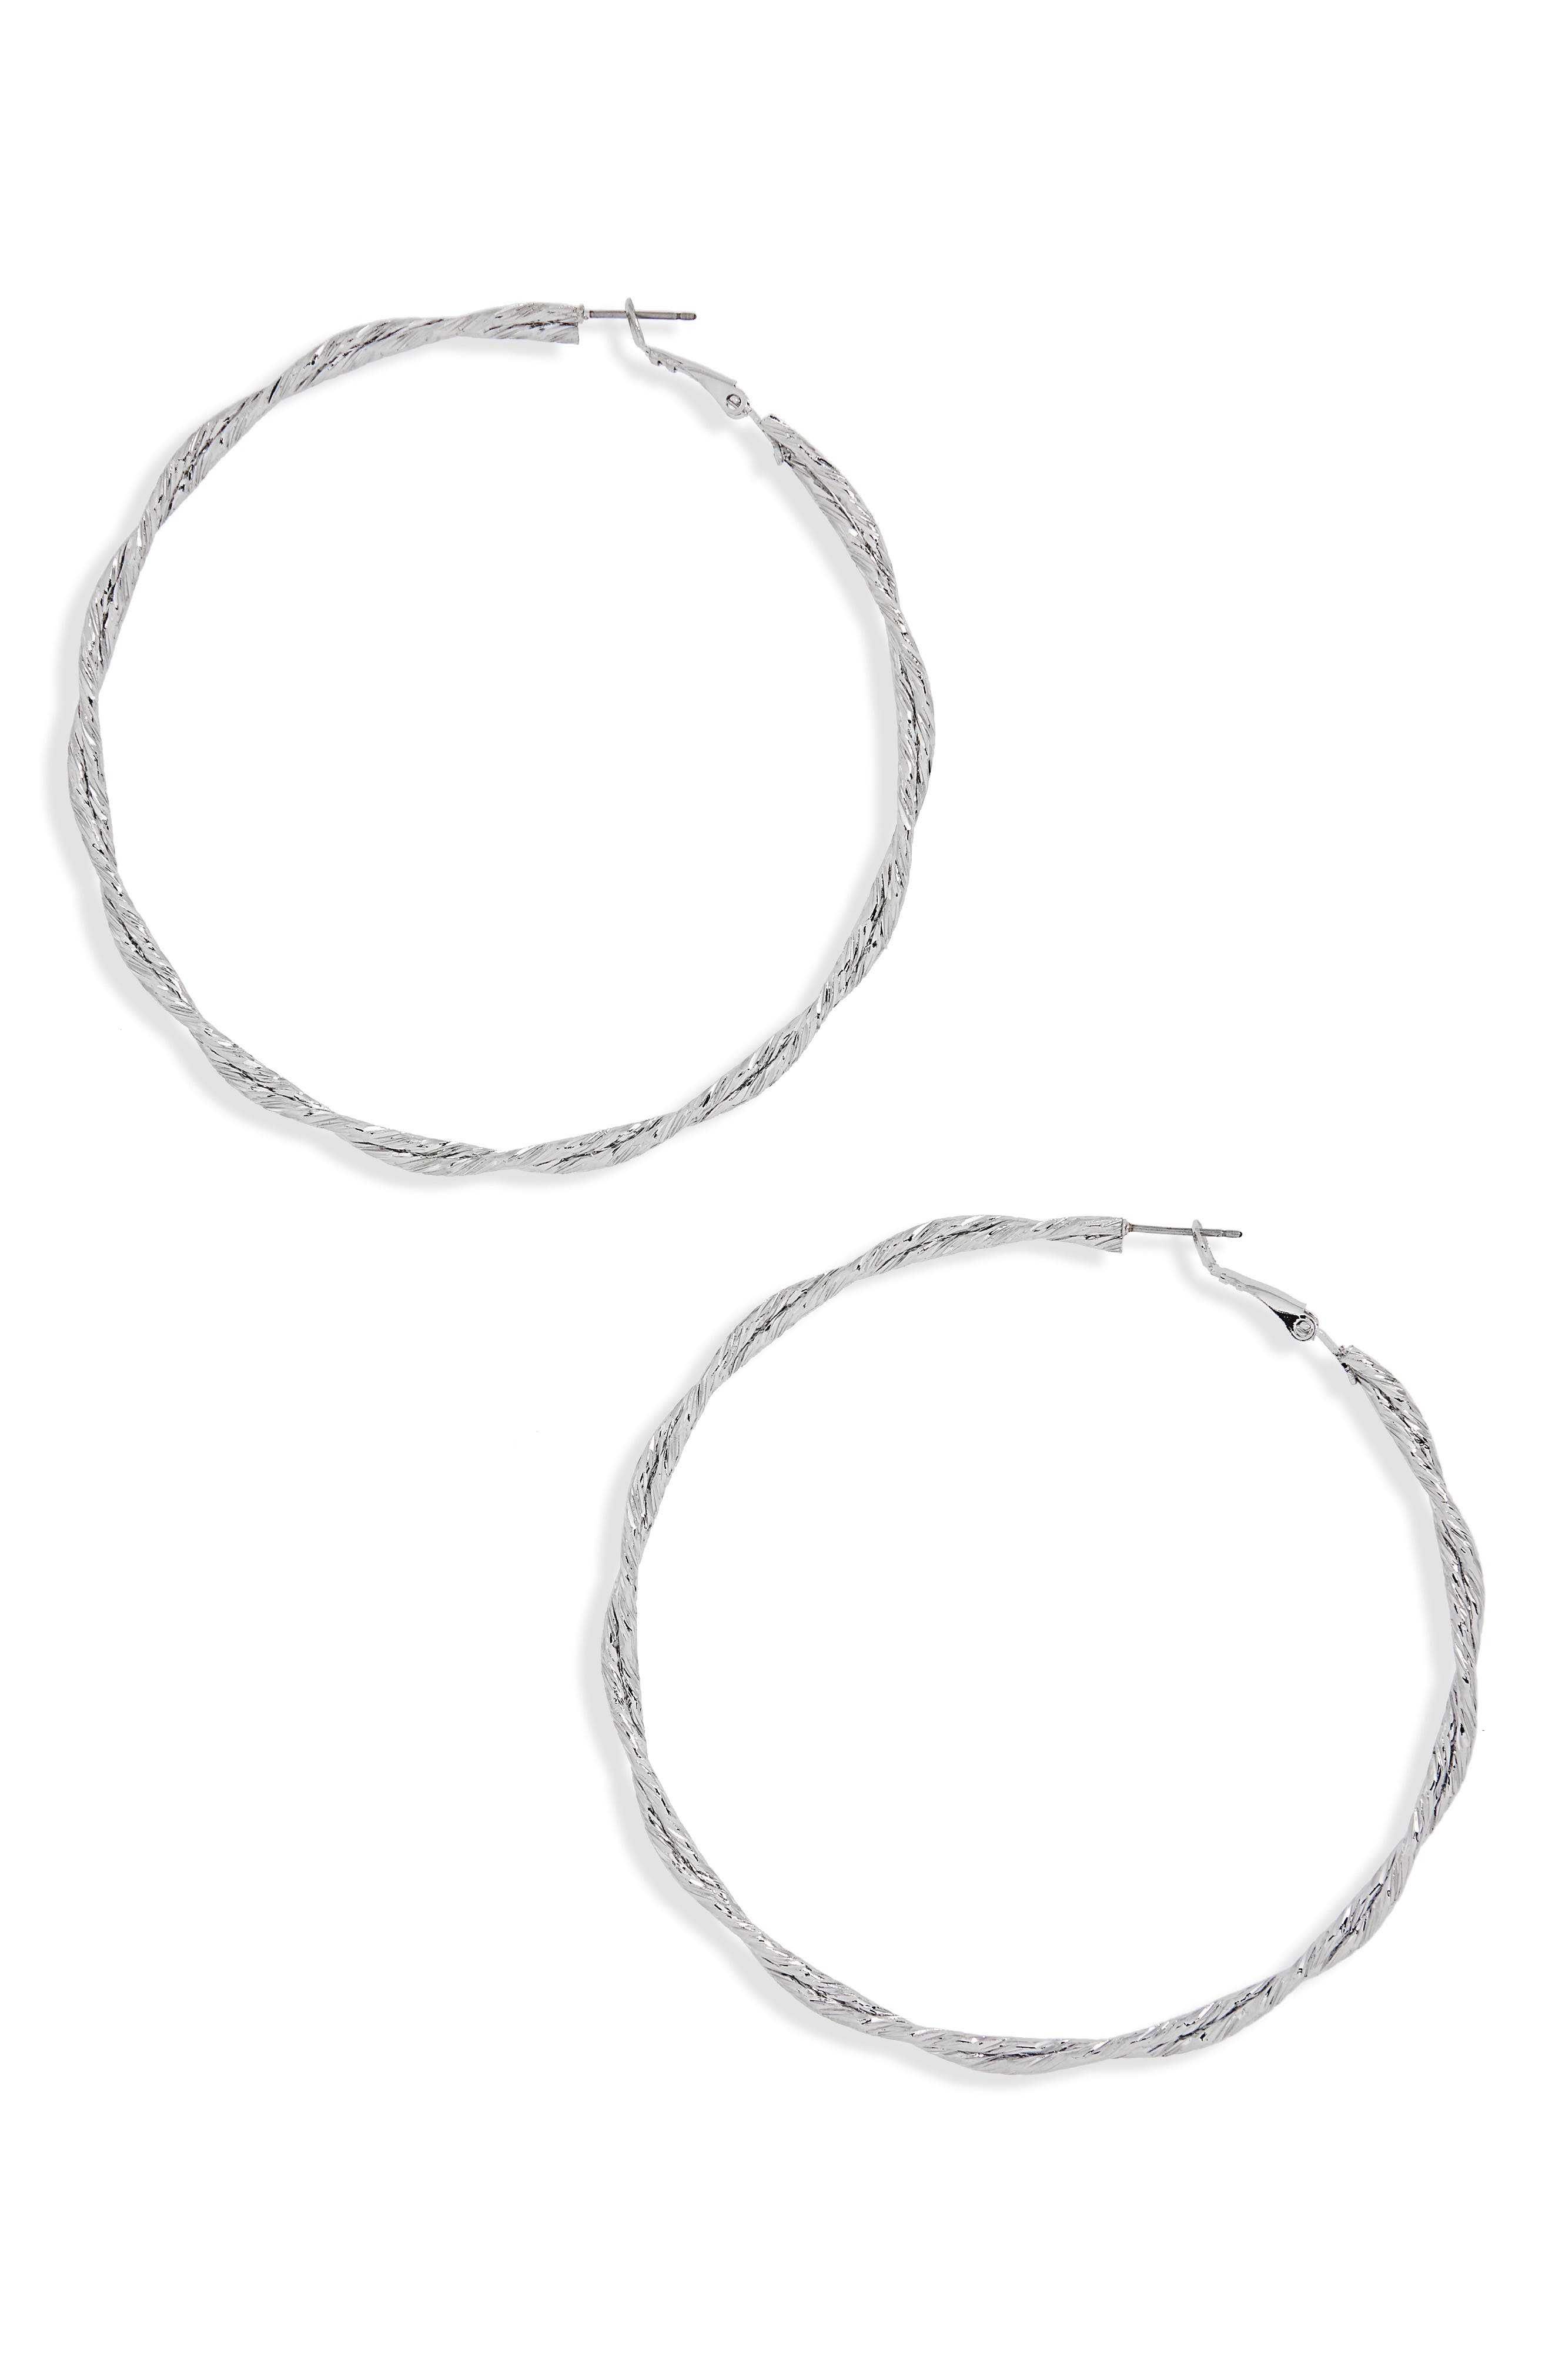 Twisted Hoop Earrings,                             Main thumbnail 1, color,                             Silver